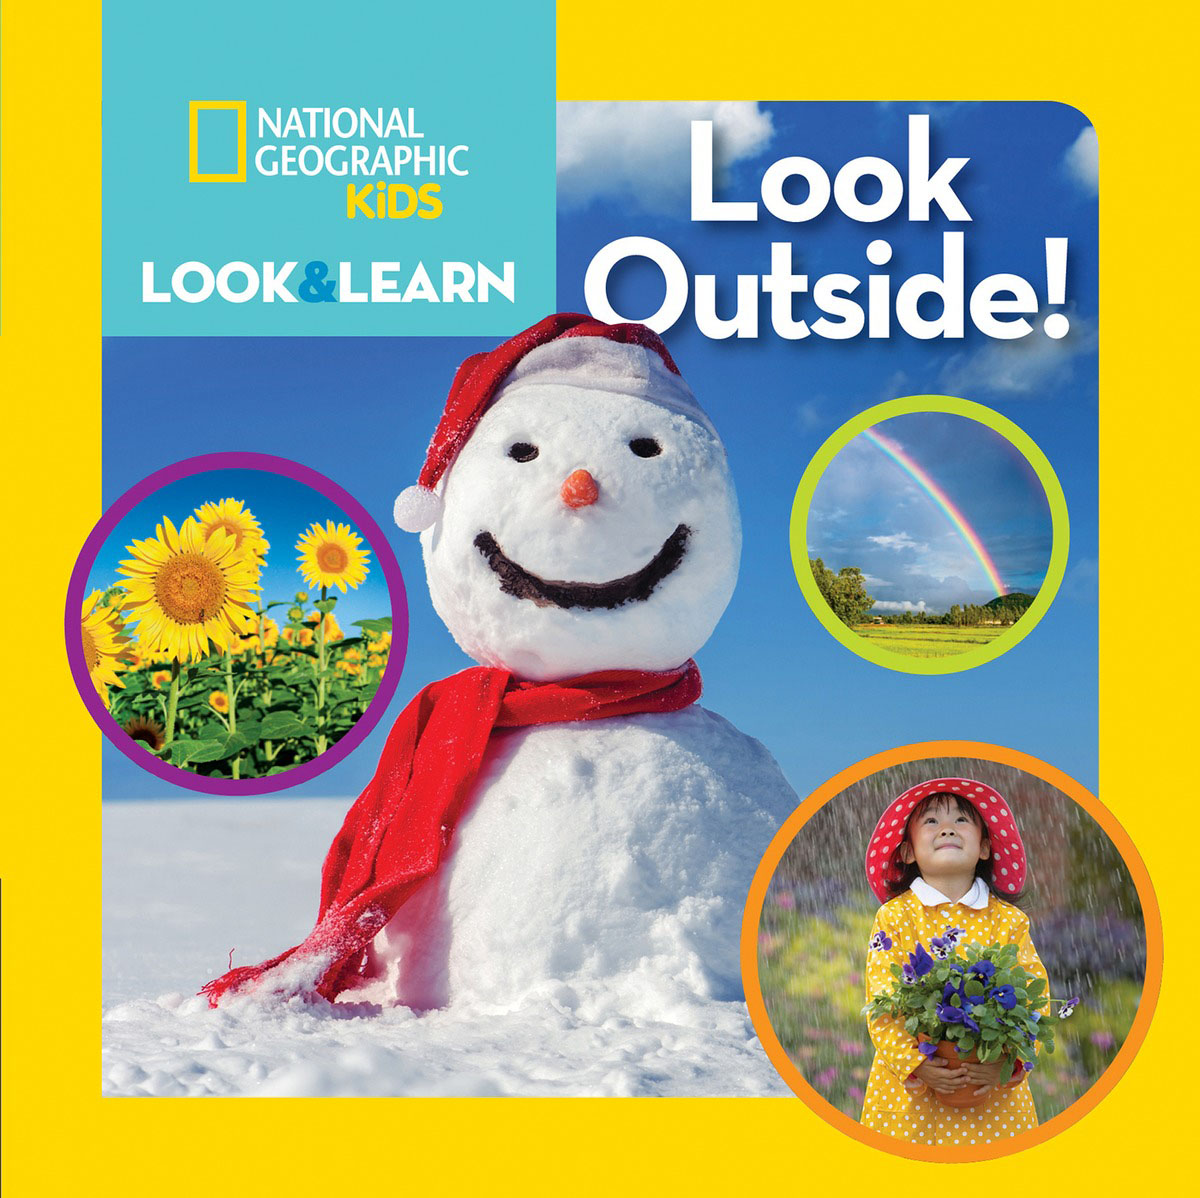 National Geographic Kids Look and Learn: Look Outside! to reach the clouds page 5